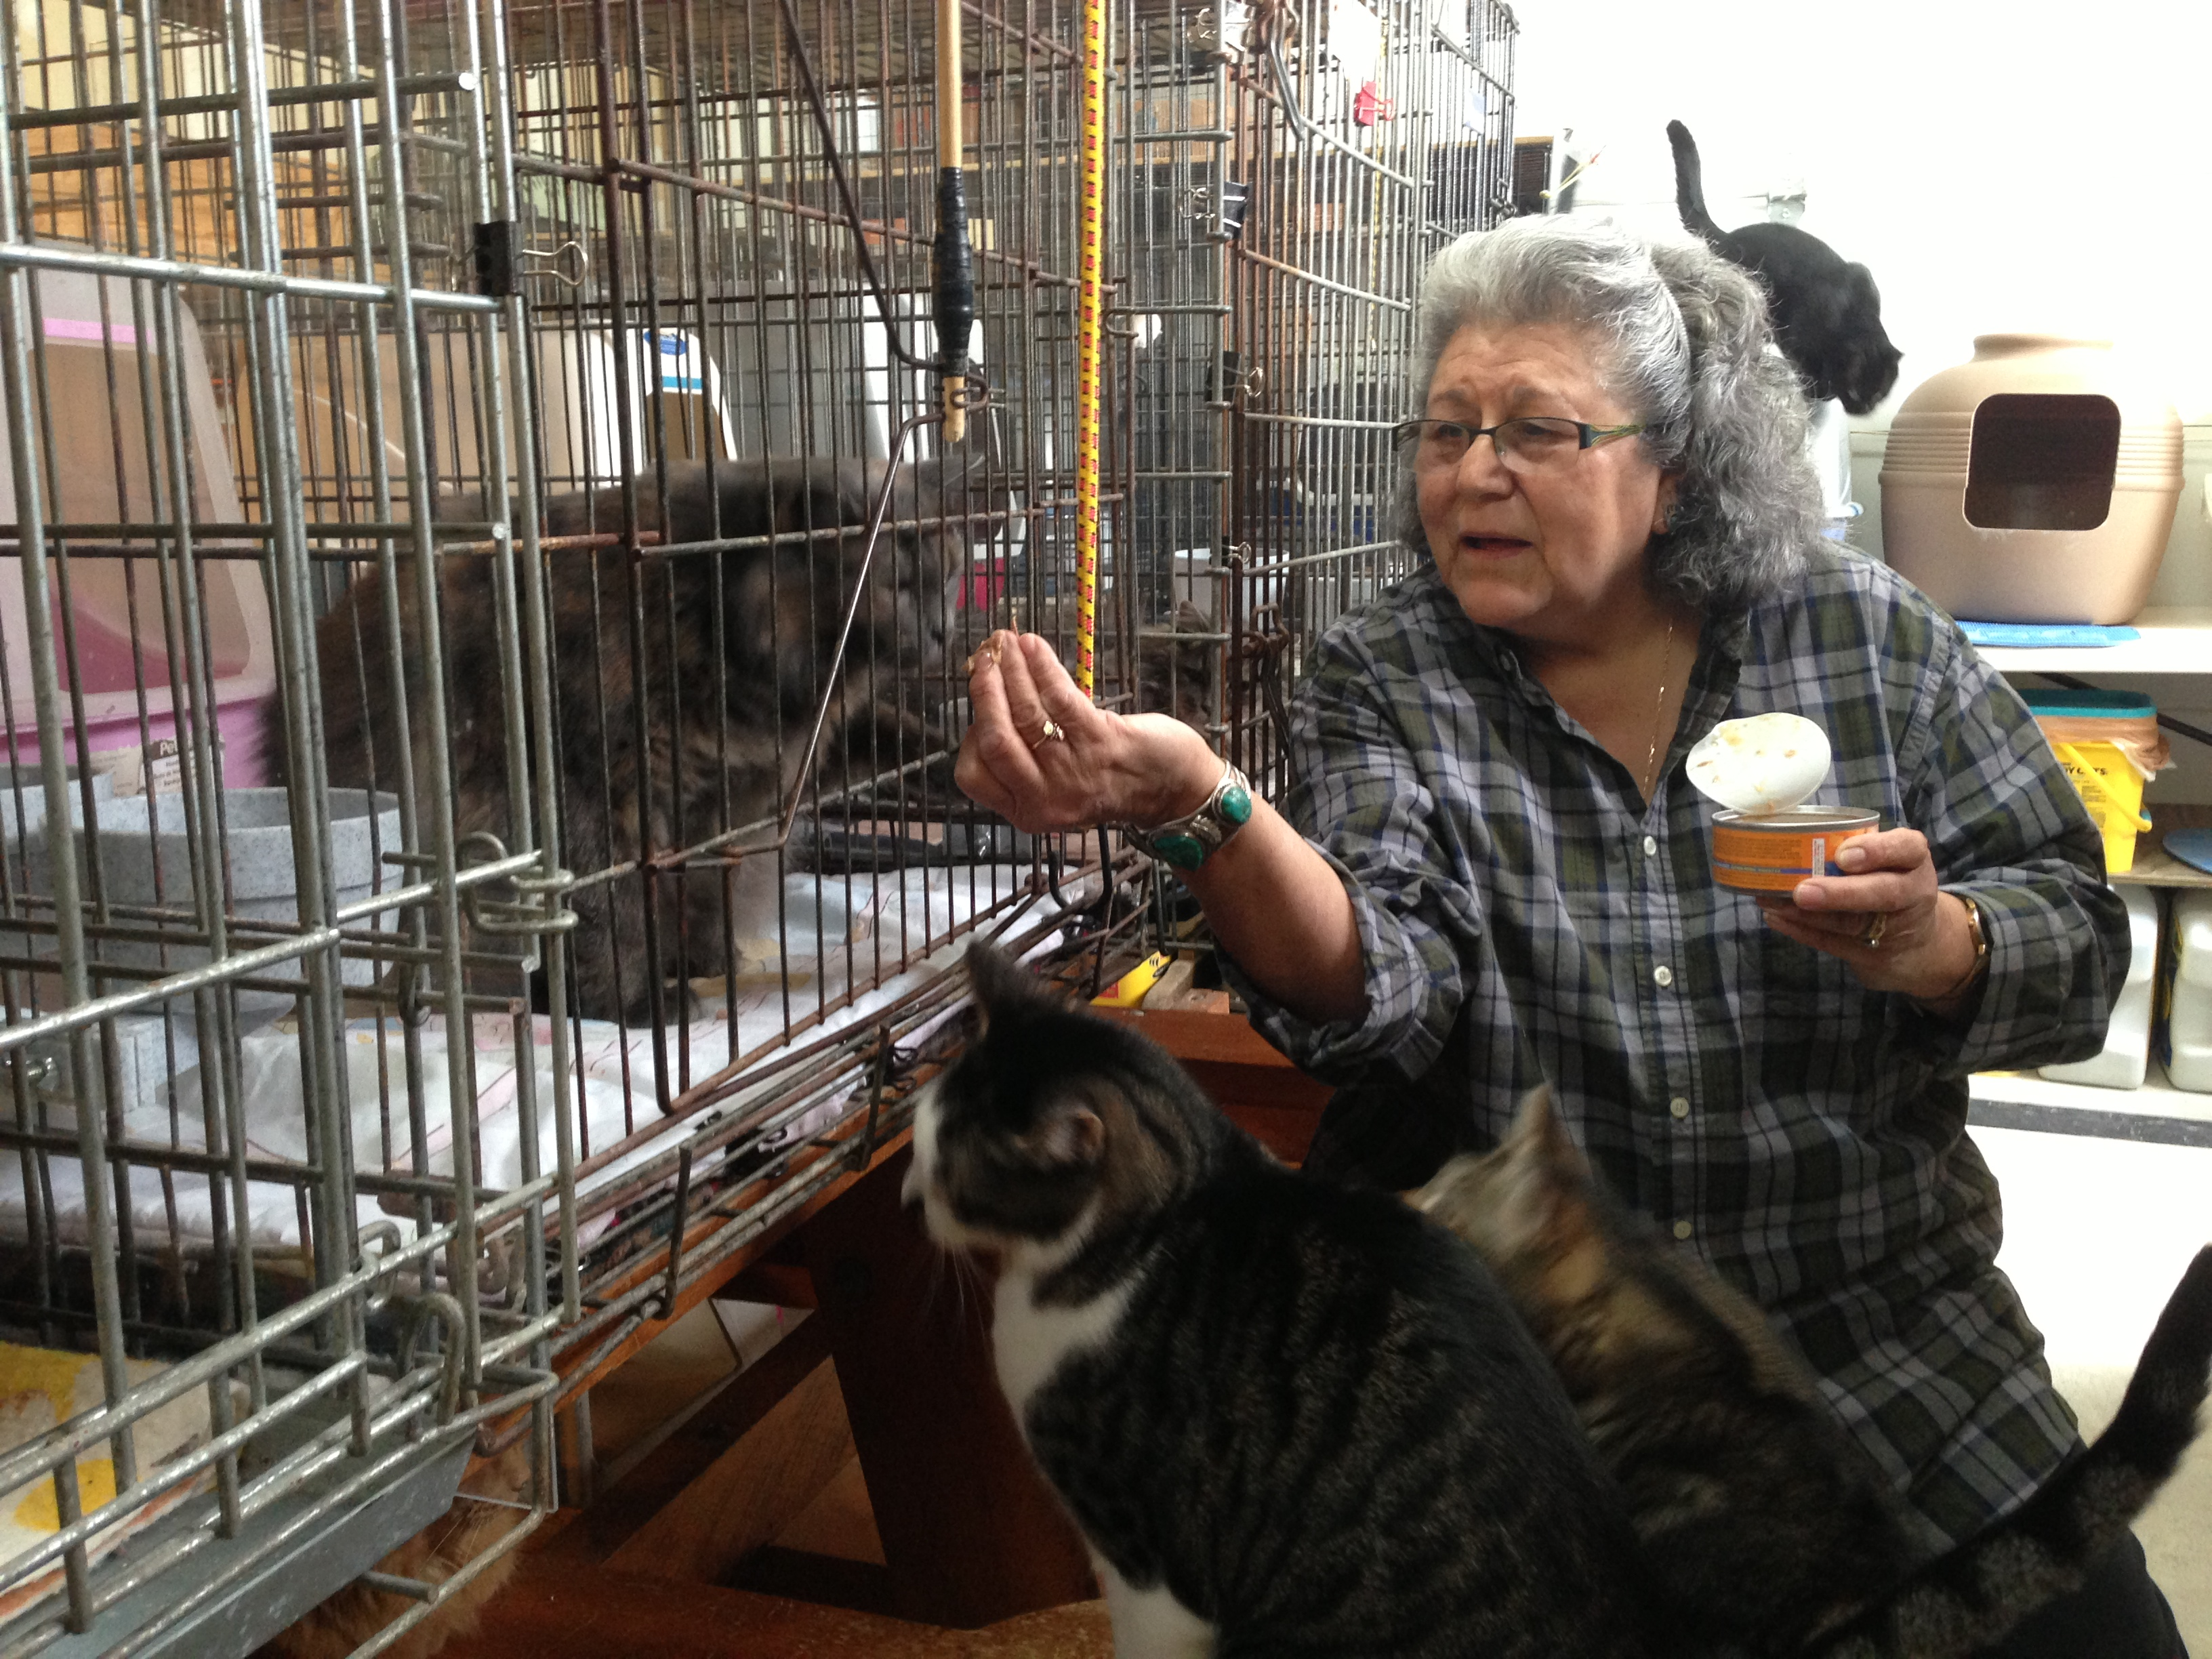 Dolores Klinke feeds cats in her garage at St. Frances Animal Rescue. (Photo by Shady Grove Oliver/KSTK)